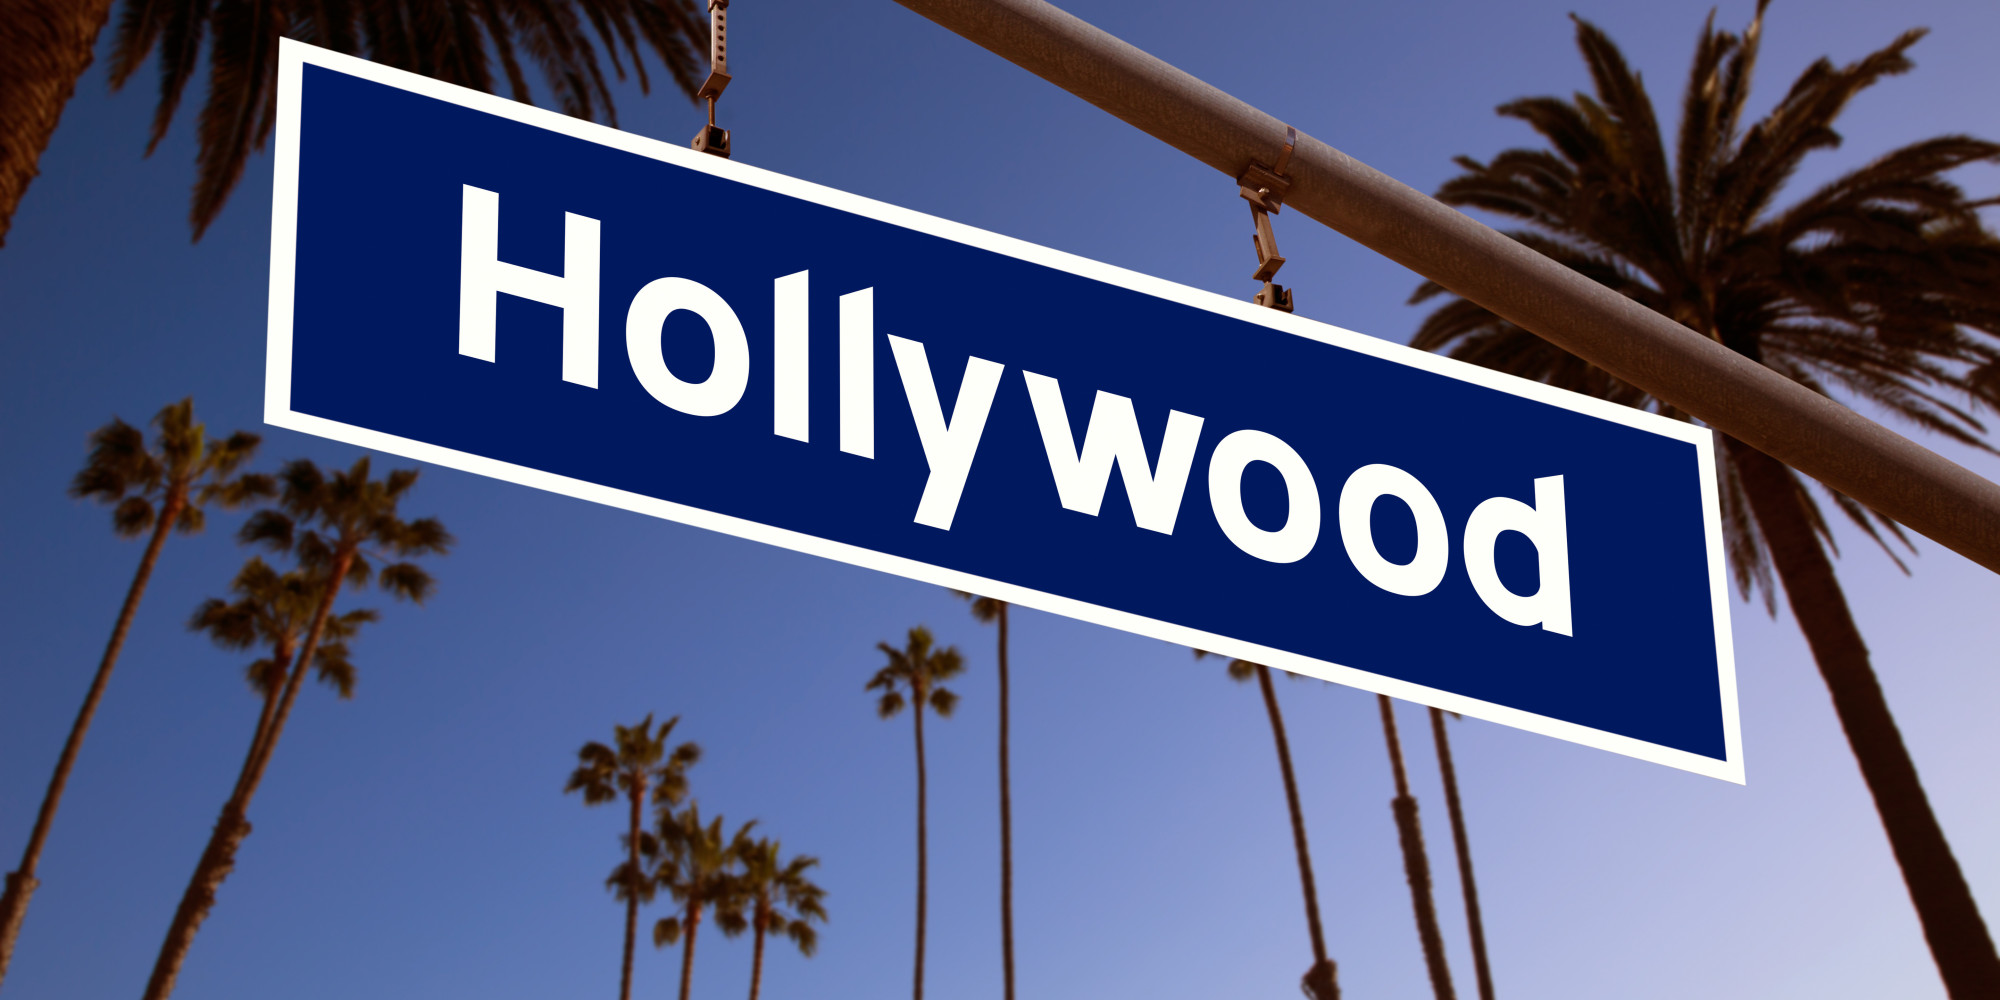 Hollywood und die Outsourcing Industrie in Indien | Sascha Thattil